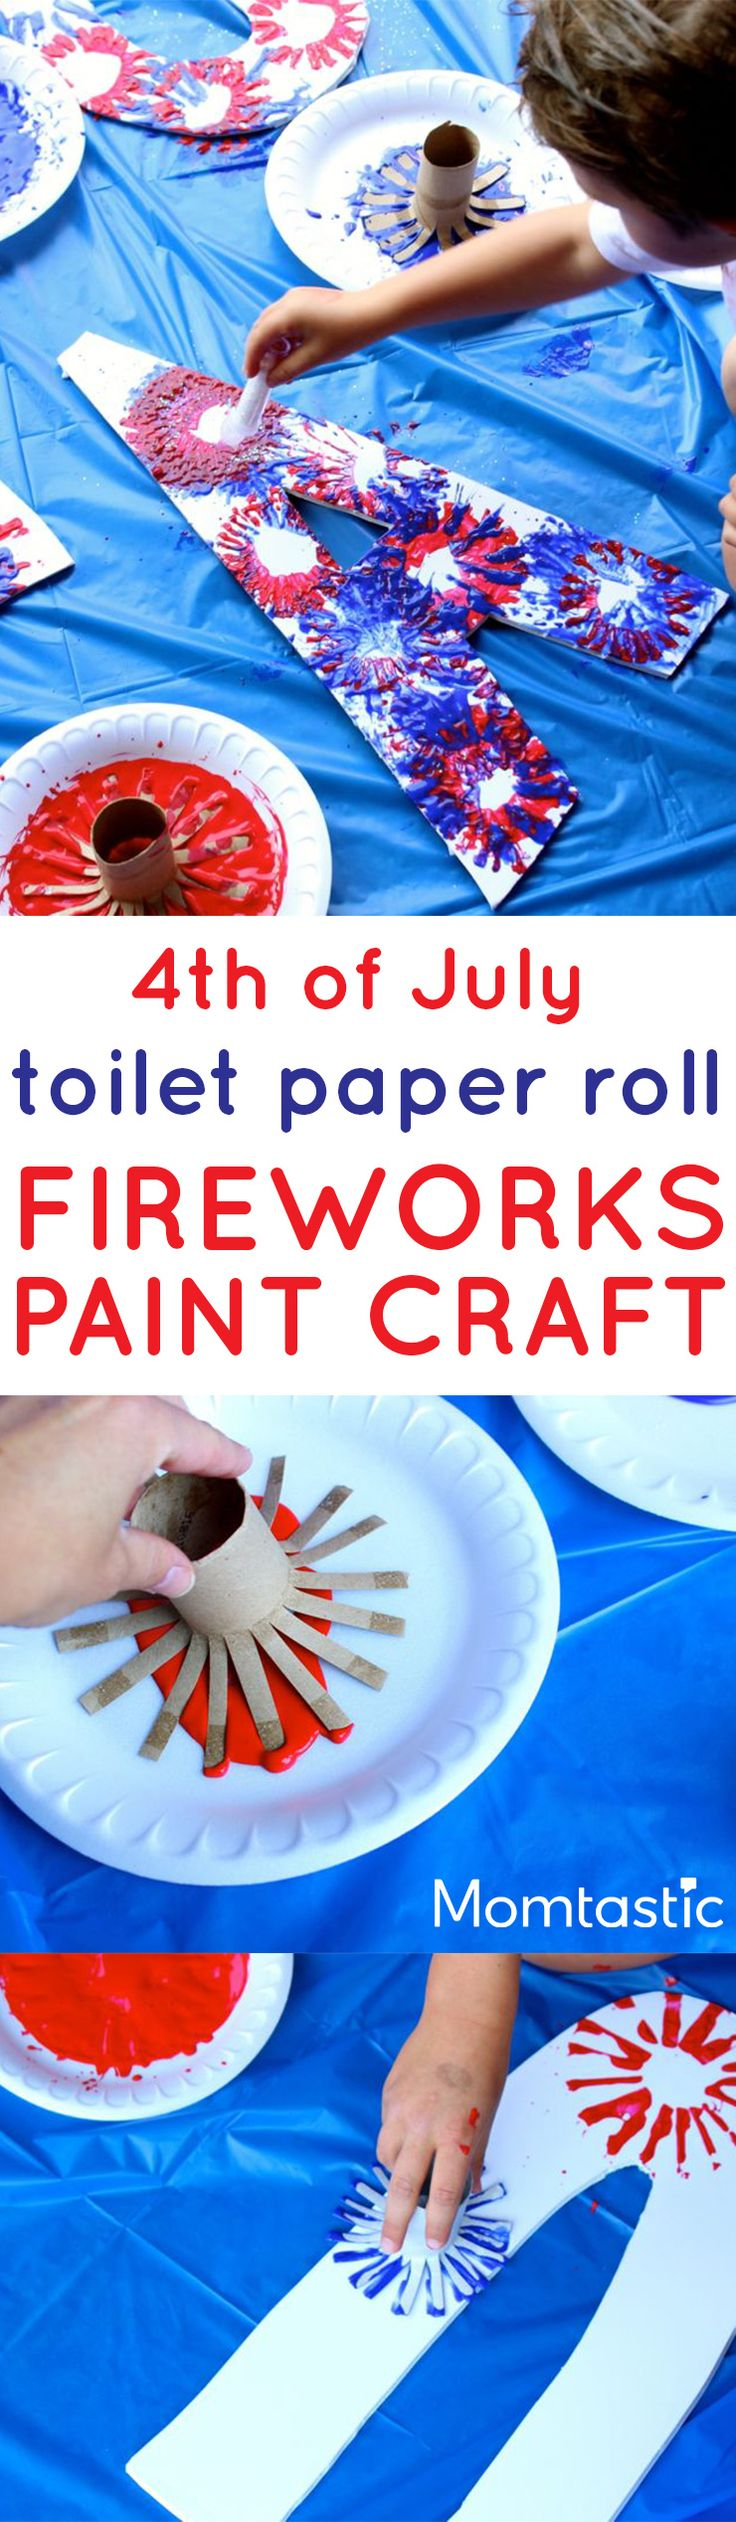 Recycle toilet paper rolls for this fireworks kids craft project - Spell out USA in honor of Independence Day! Love this easy afternoon craft project that takes barely any setup or materials.